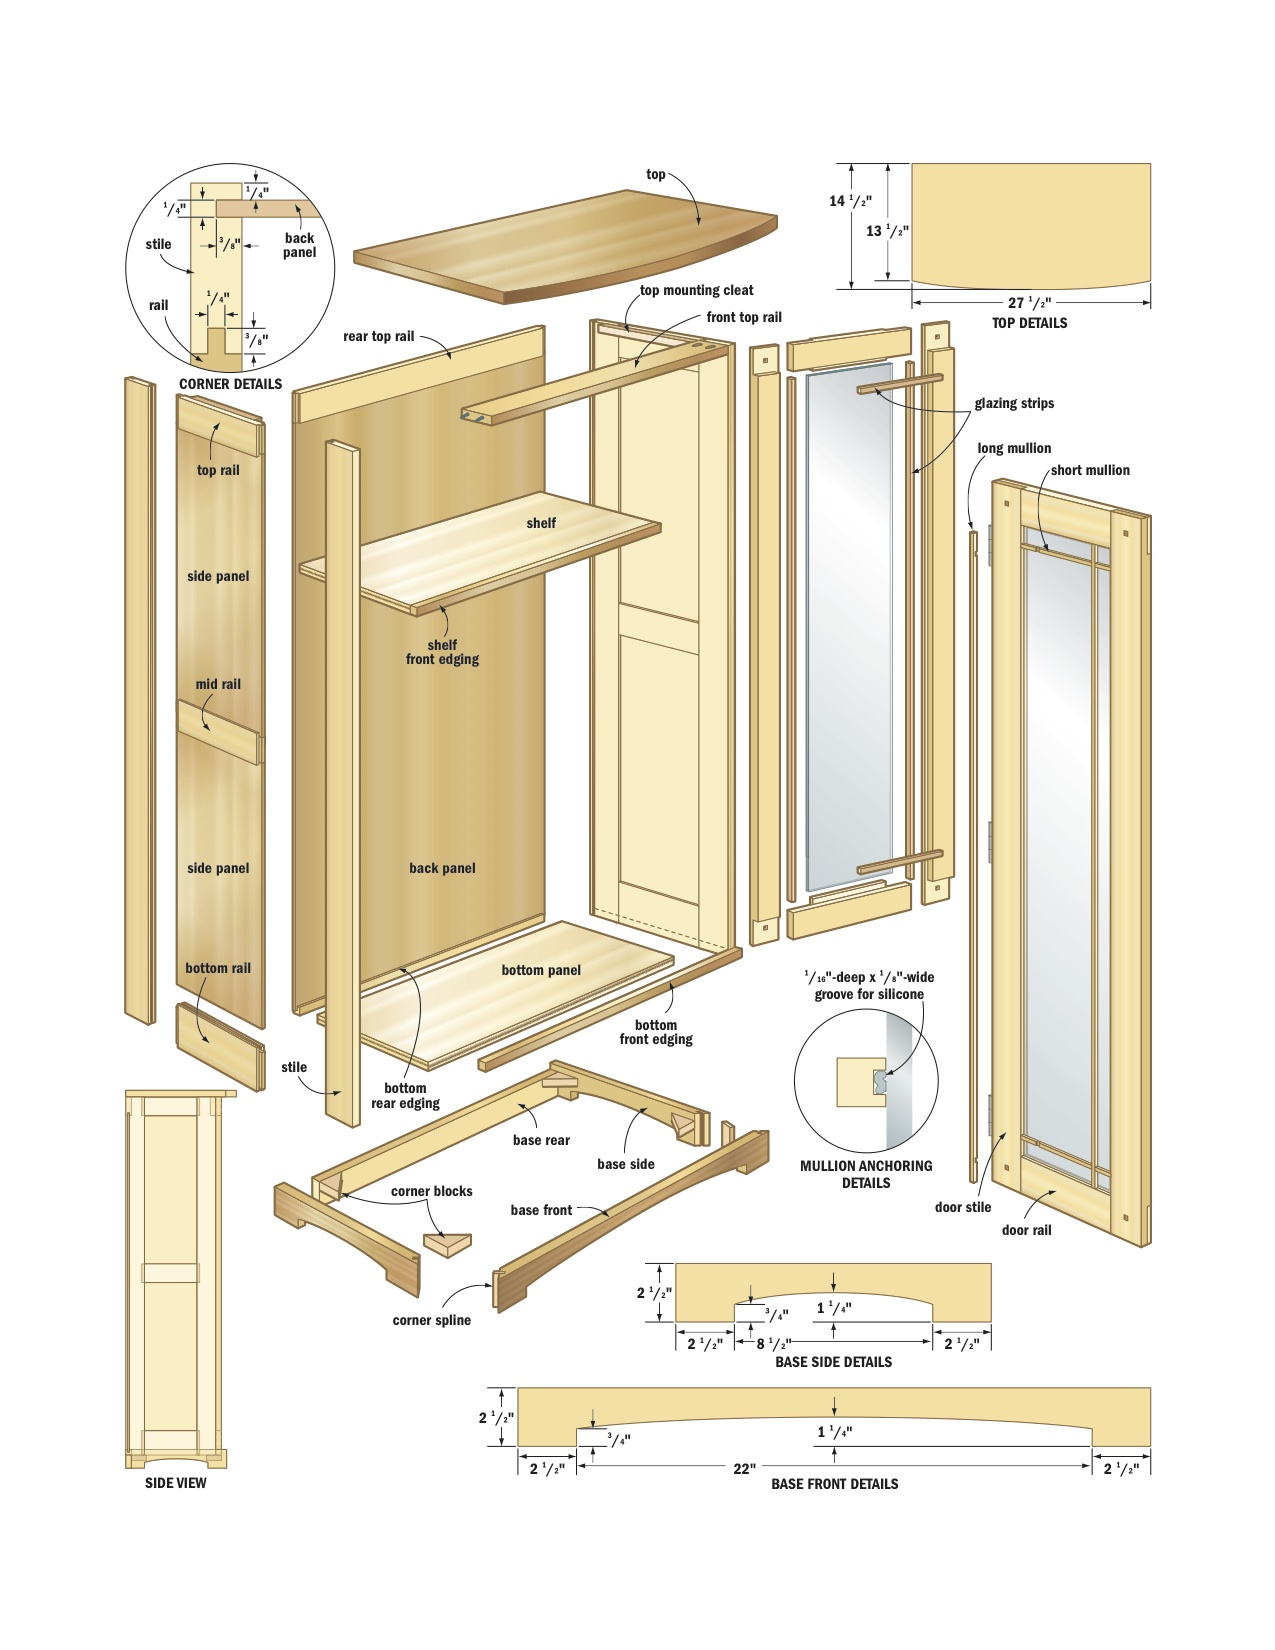 27 Elegant Woodworking Plans Free Download egorlincom